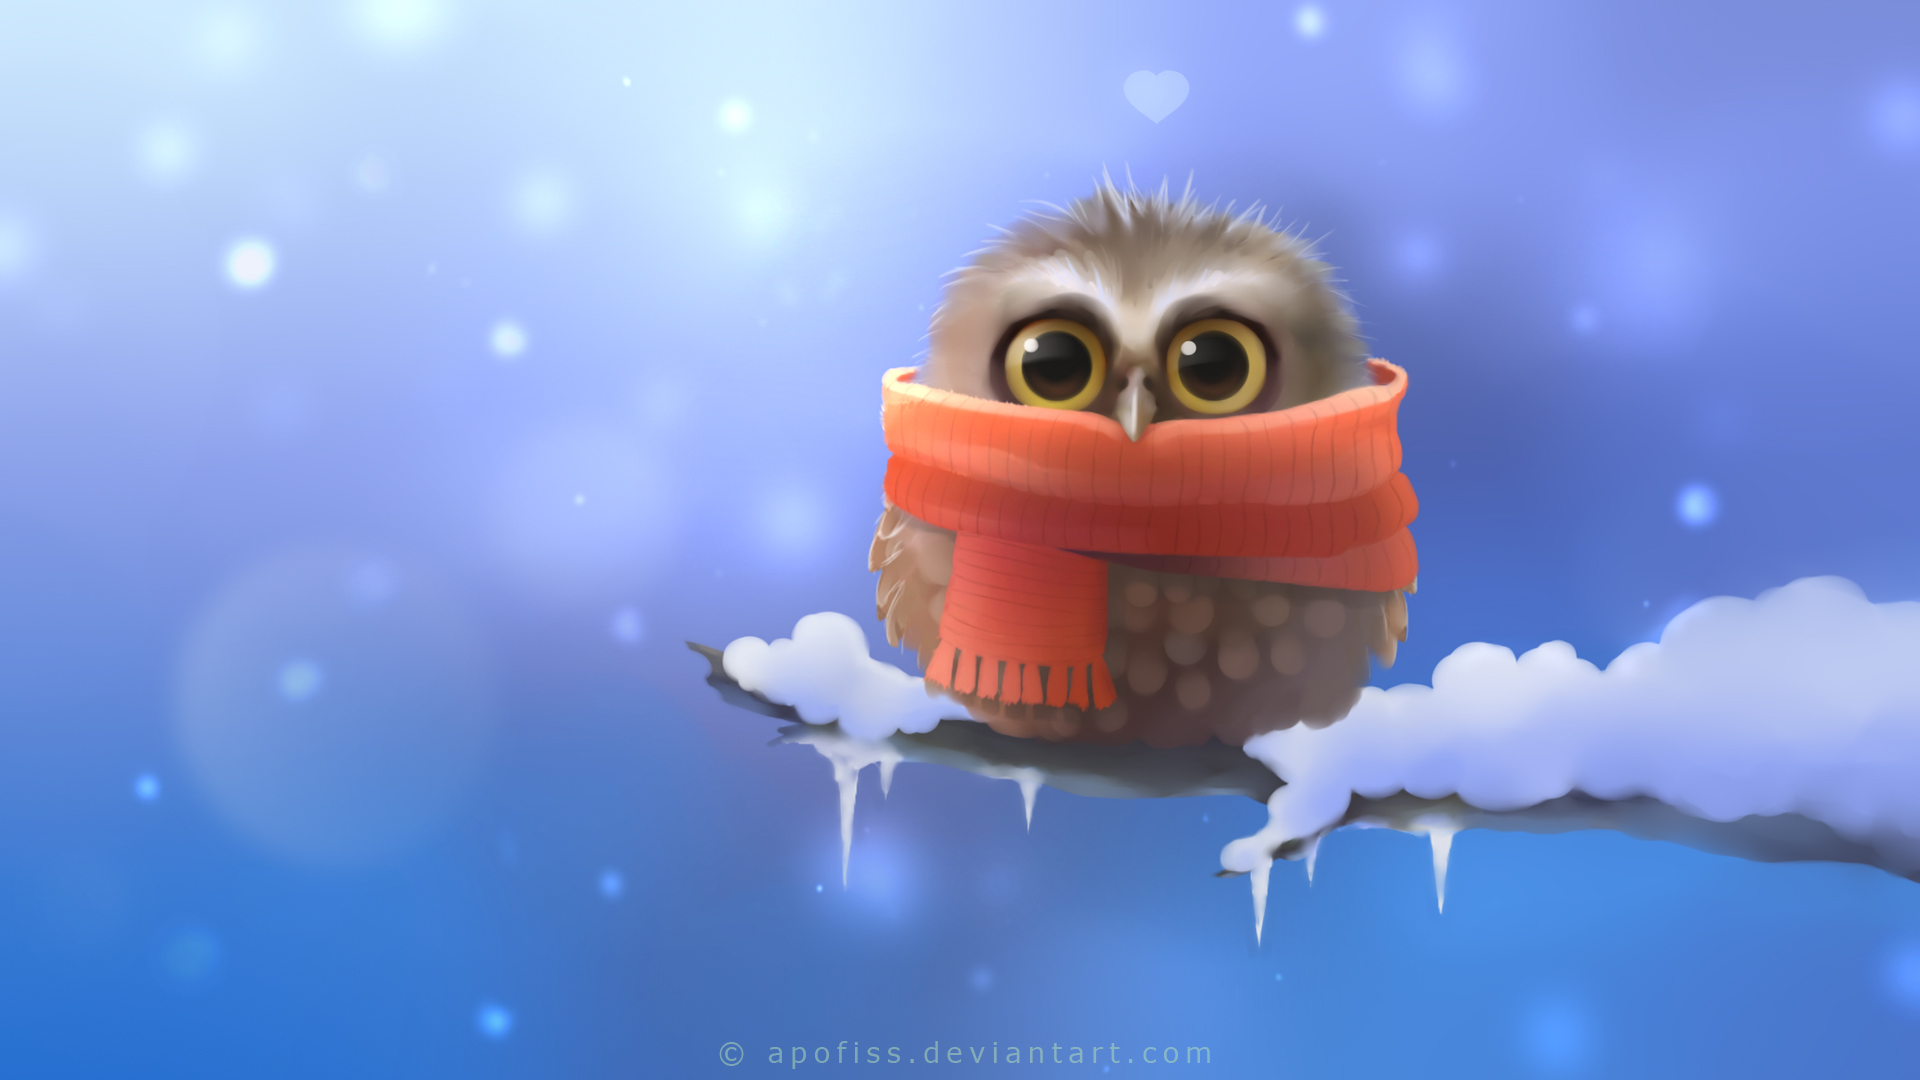 800x1280 cute owl nexus 7samsung galaxy tab 10note android tablets cute owl nexus 7samsung galaxy tab 10note android tablets voltagebd Images